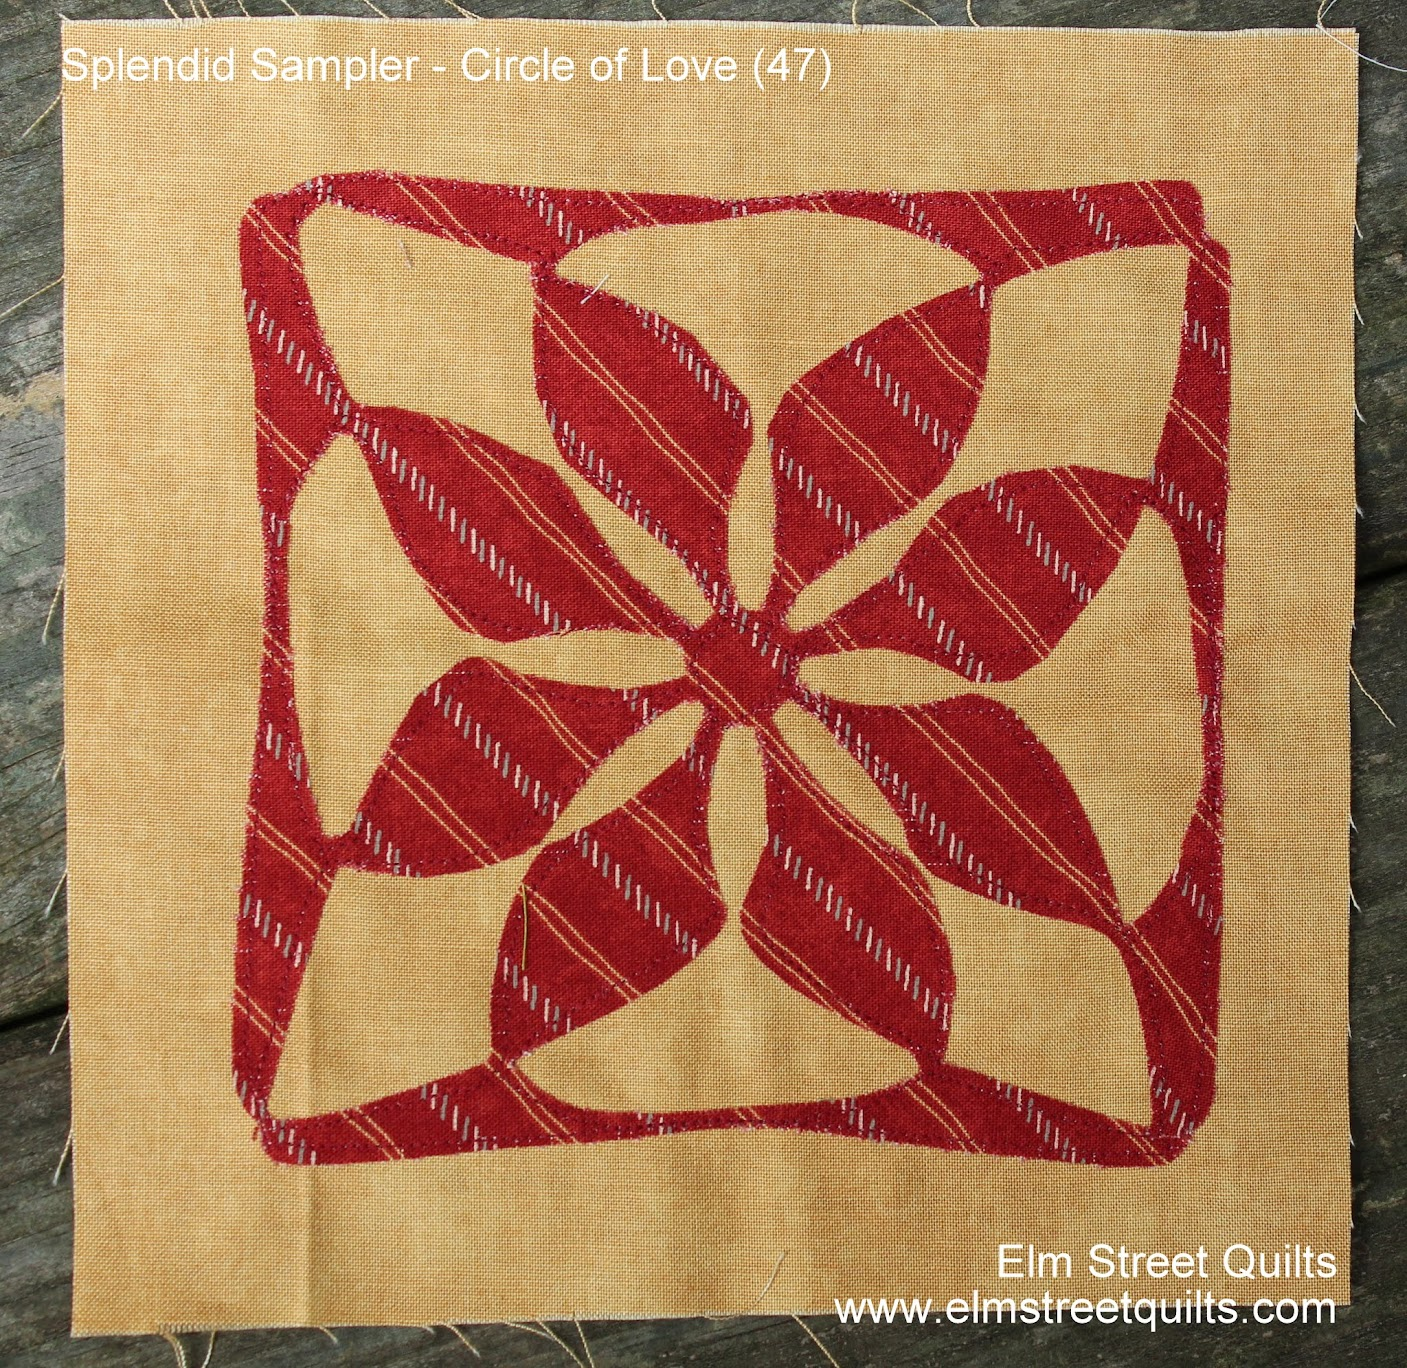 Splendid Sampler block 47